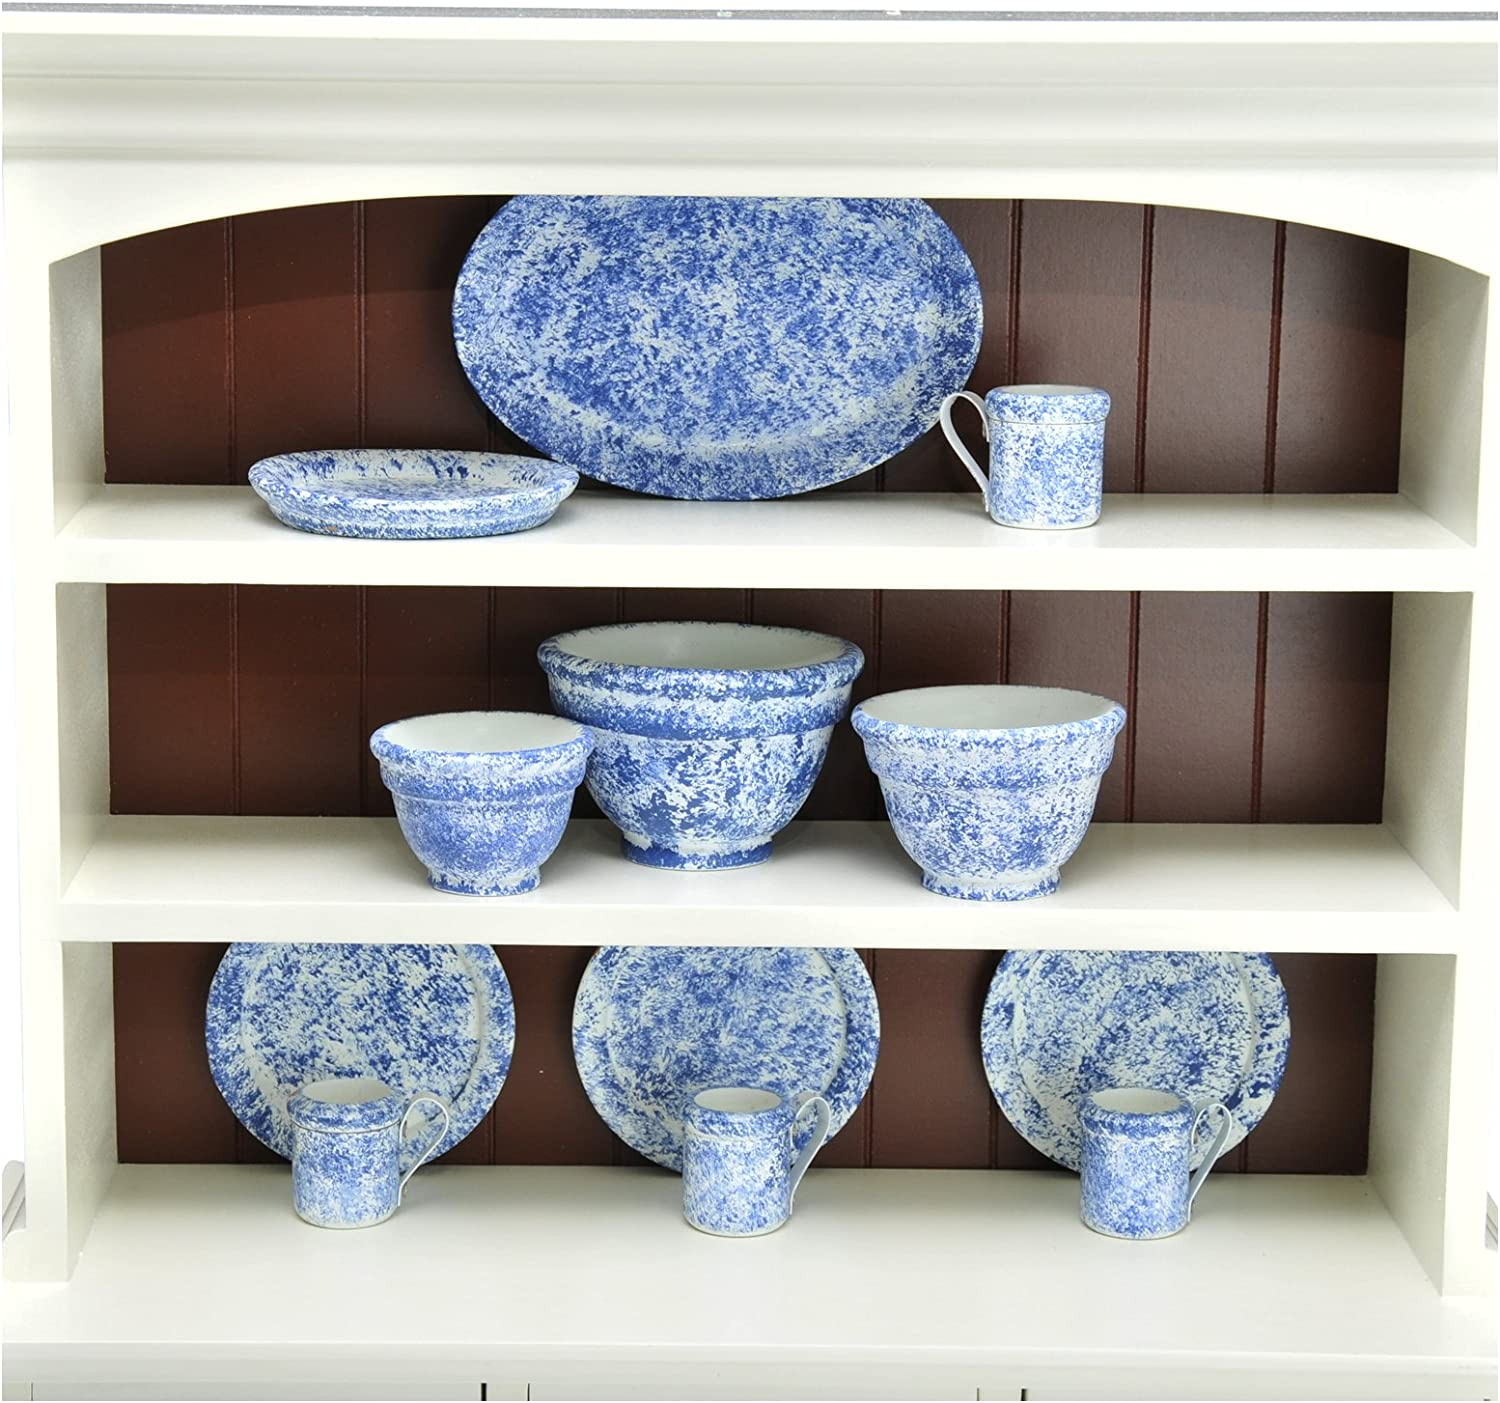 The Queen's Treasures Vintage Style Splatter Ware Serving Set Kitchen Set, 3 Nesting Bowls, Platter, 4 Dishes & 4 Cups Sized Perfectly for use with 18  American Girl Dolls Furniture & Accessories